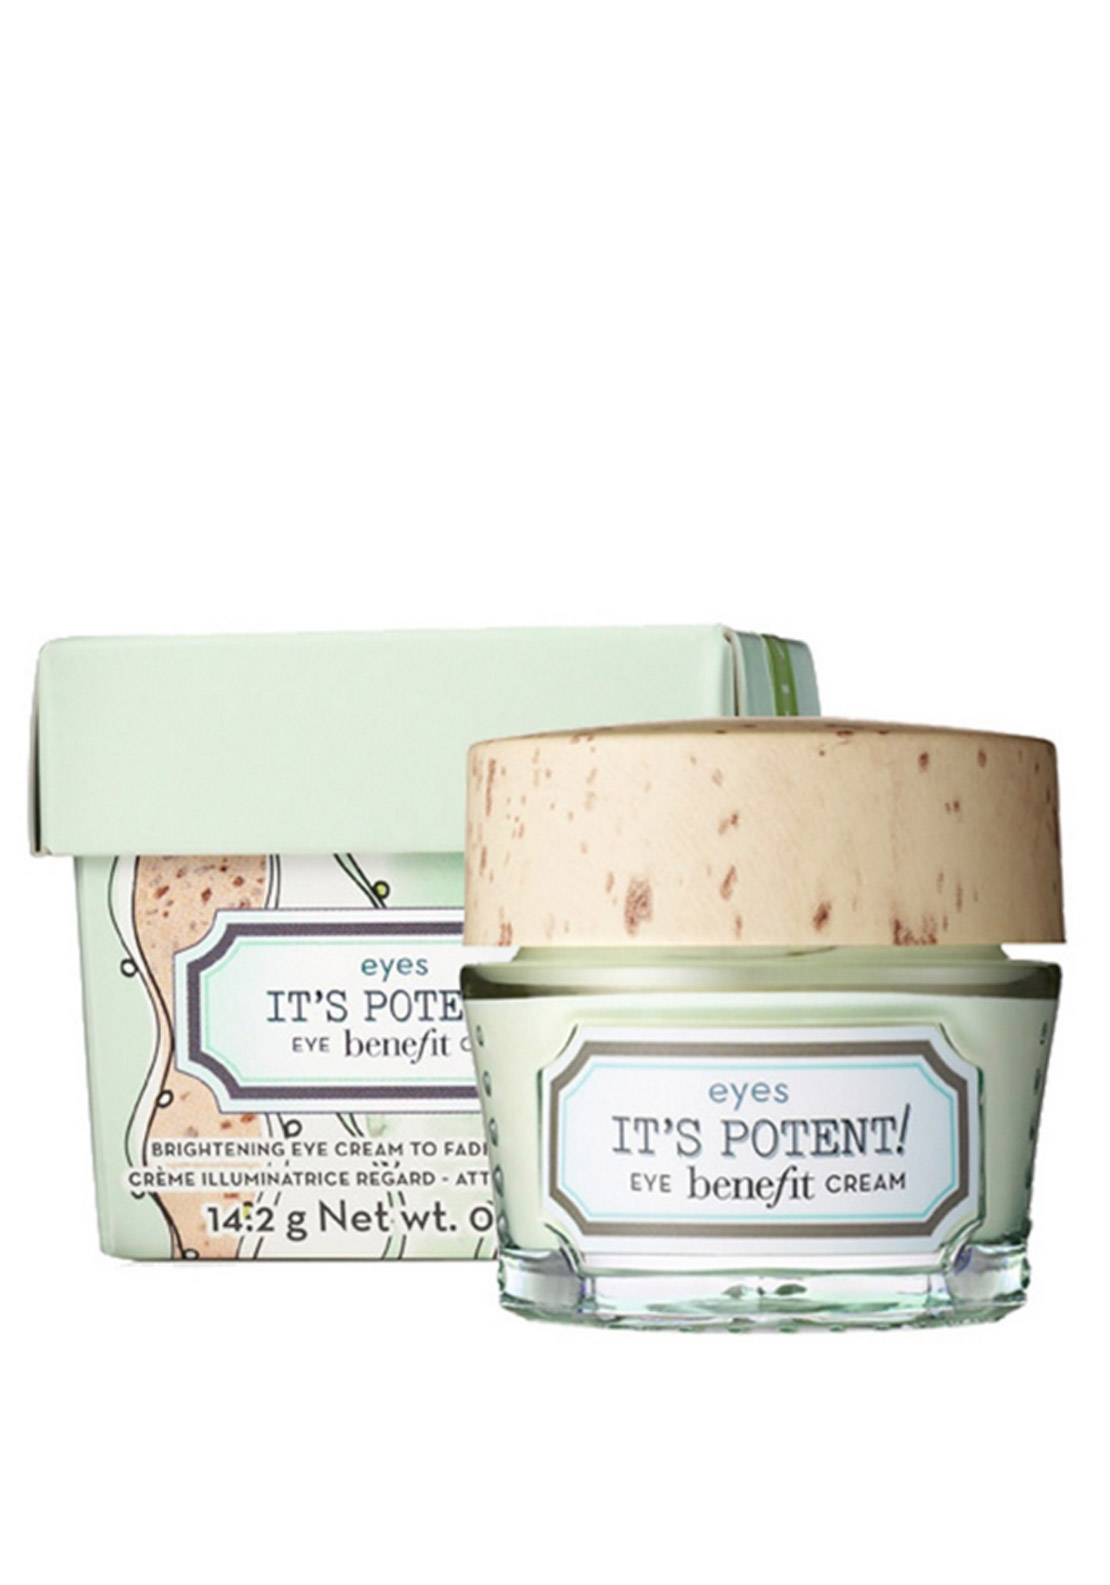 Benefit It's Potent! Brightening Eye Cream